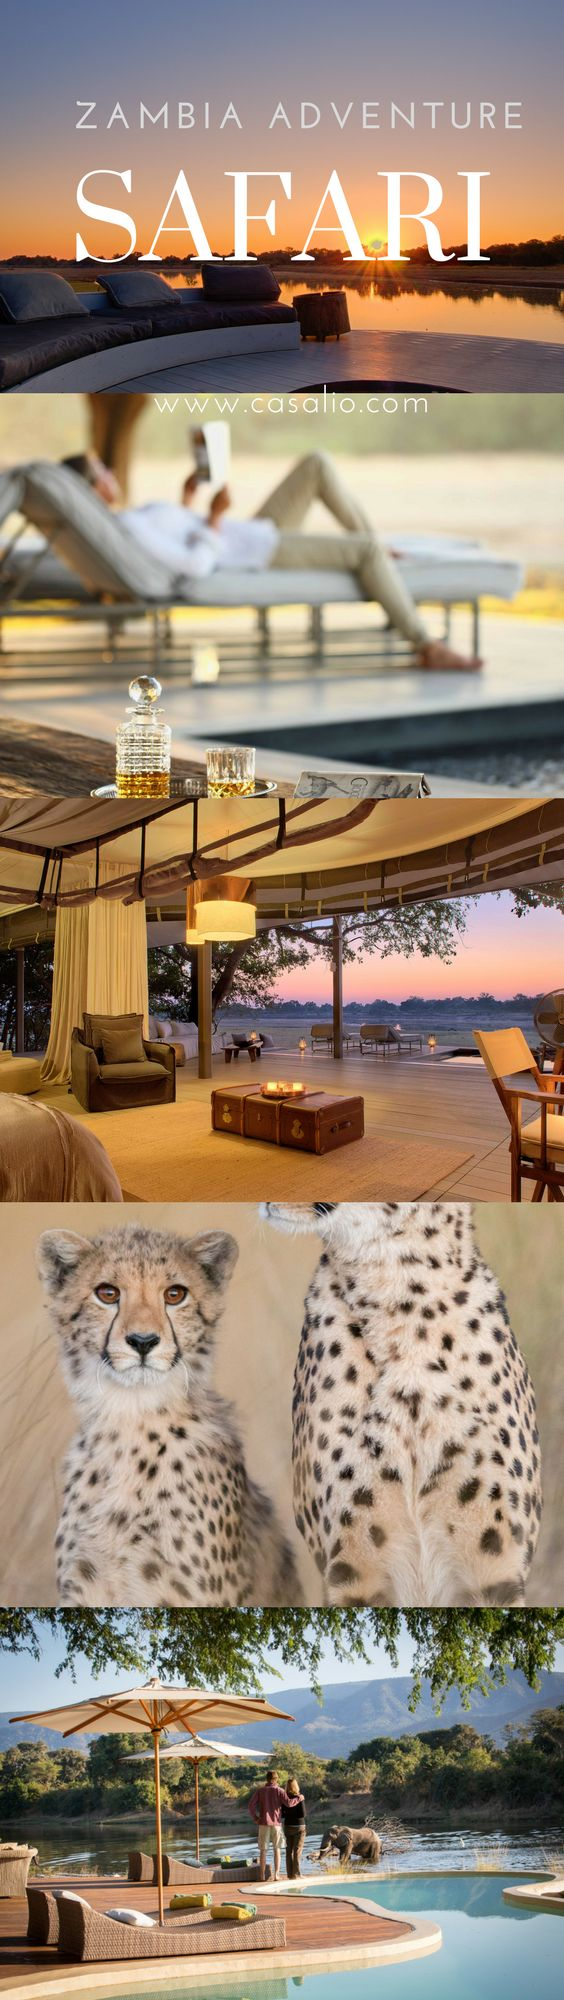 Best Safari in Zambia. Experienced Travel Guides. Luxury Chalets. Superb Luxury Accommodation.